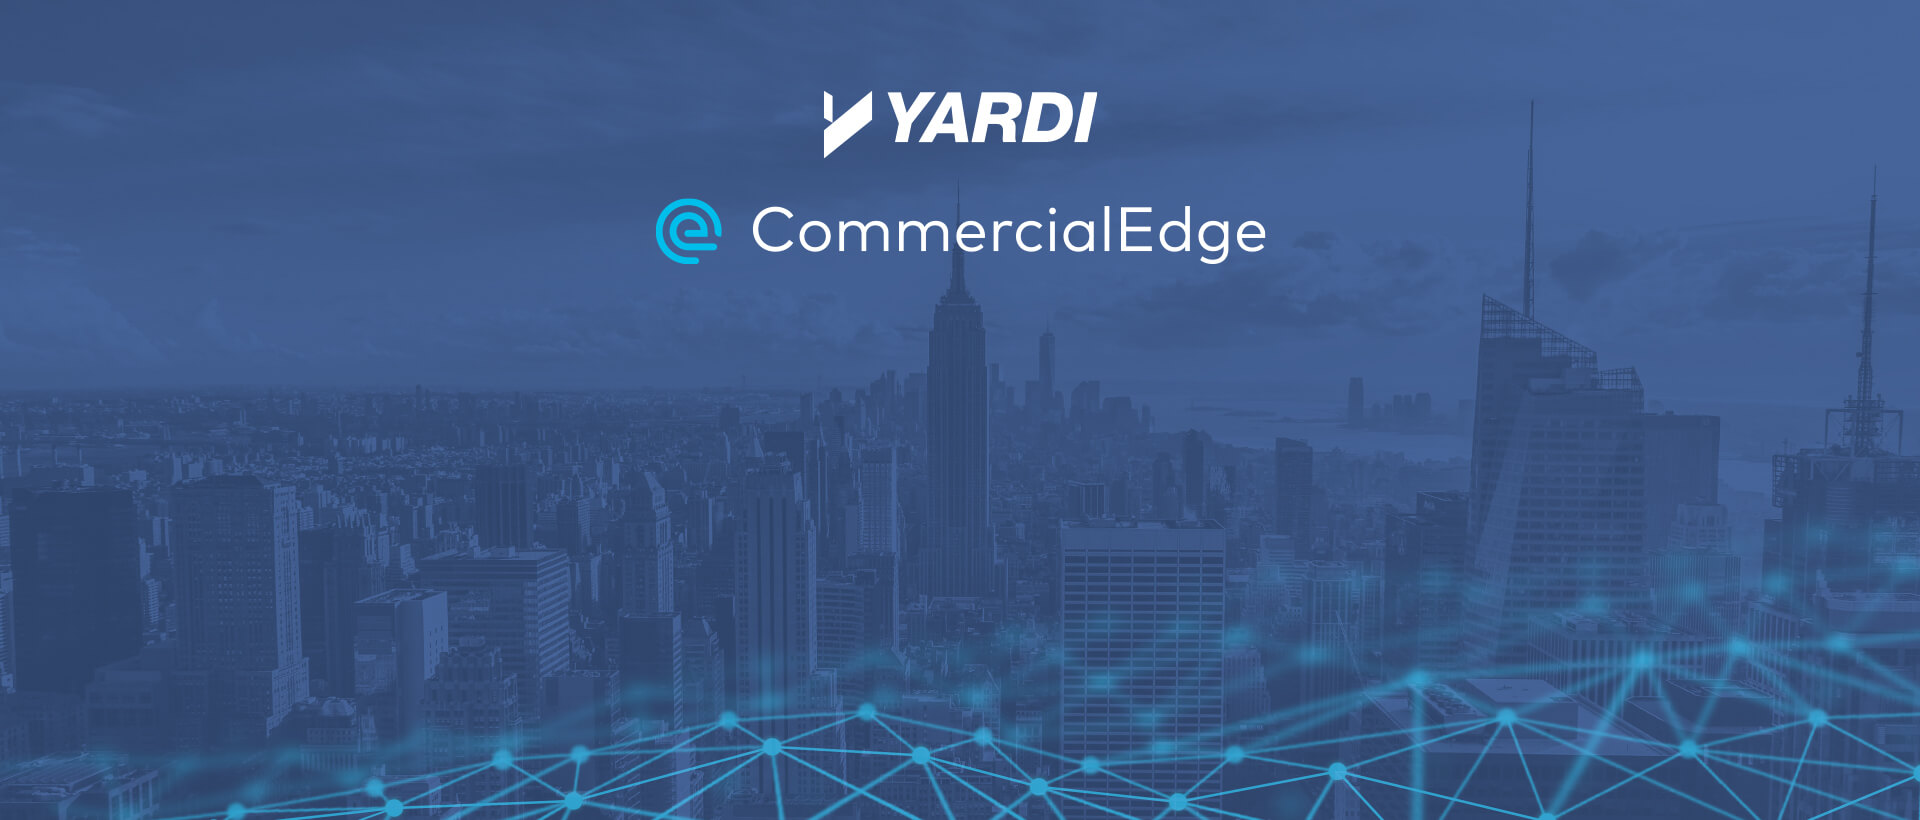 CommercialEdge from Yardi to Improve Research for CRE